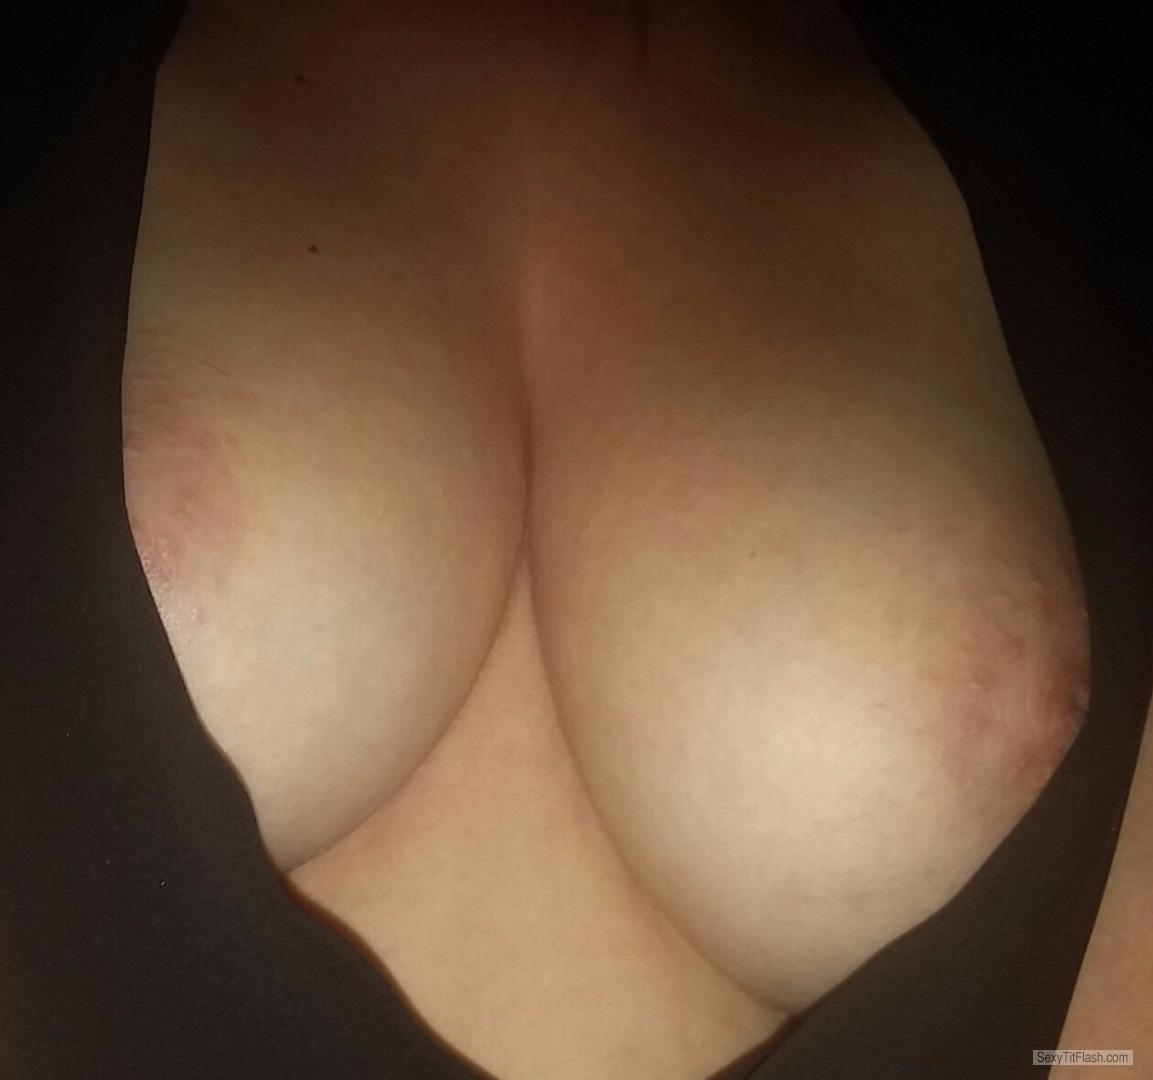 Tit Flash: My Small Tits - Sc from United Kingdom